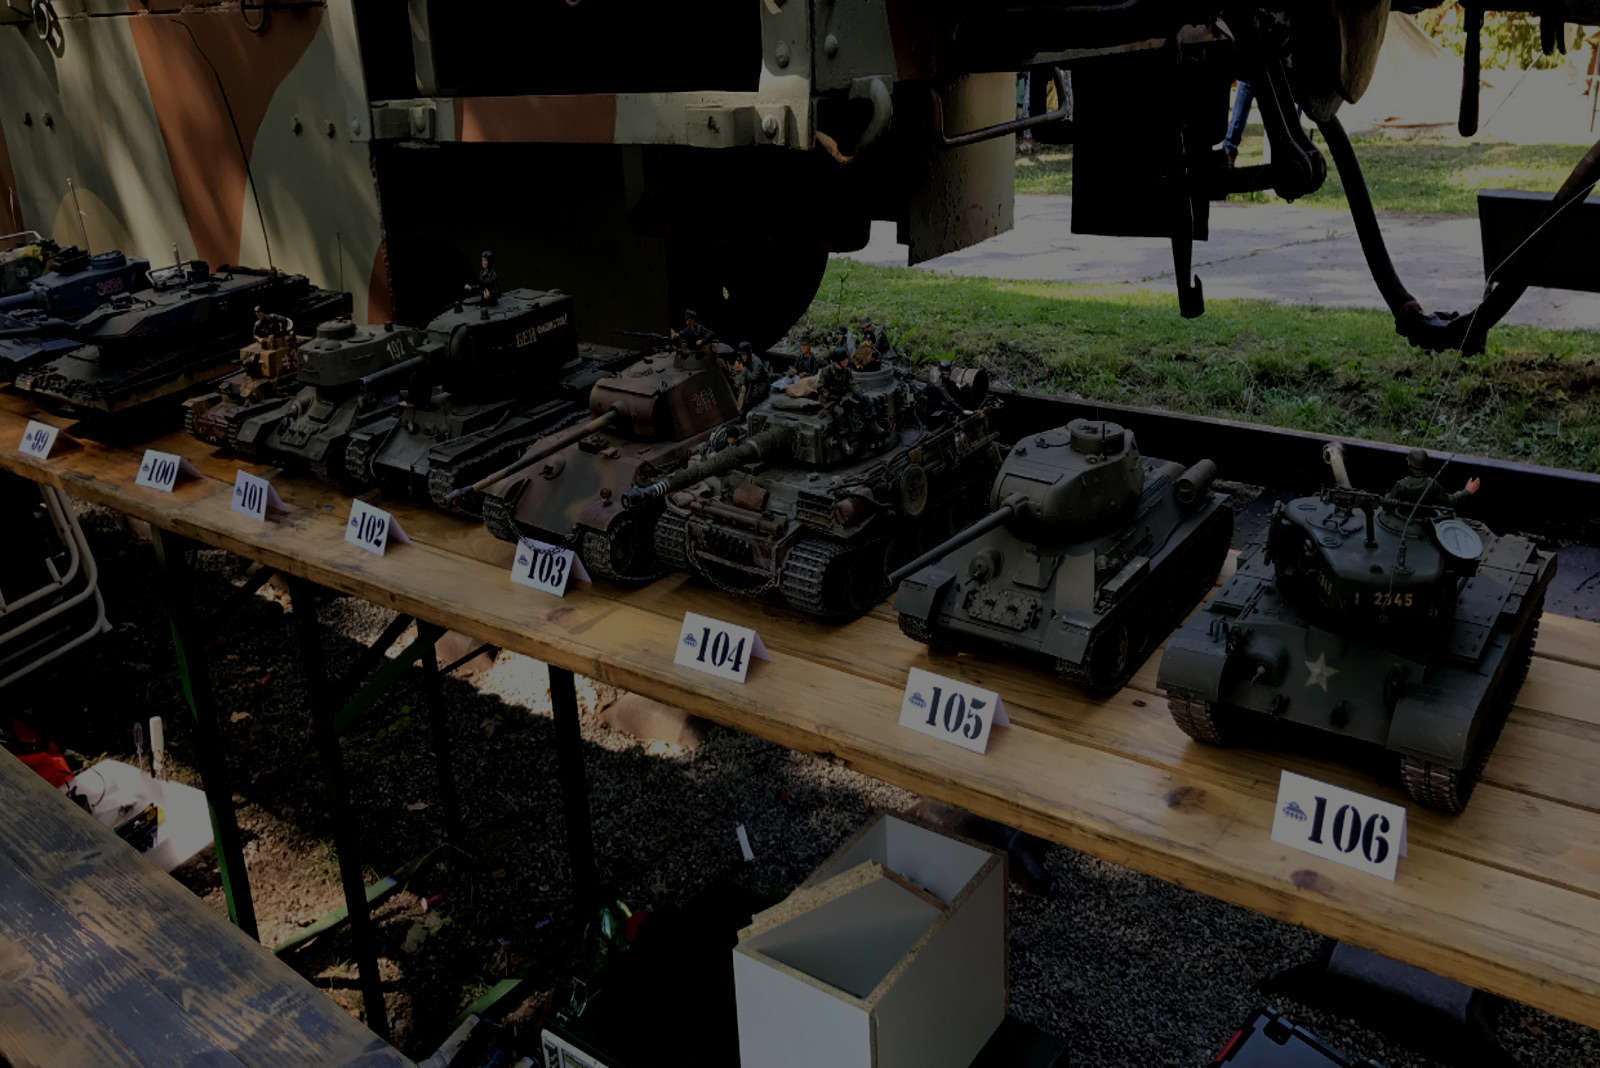 Official record, 118 RC tank models =